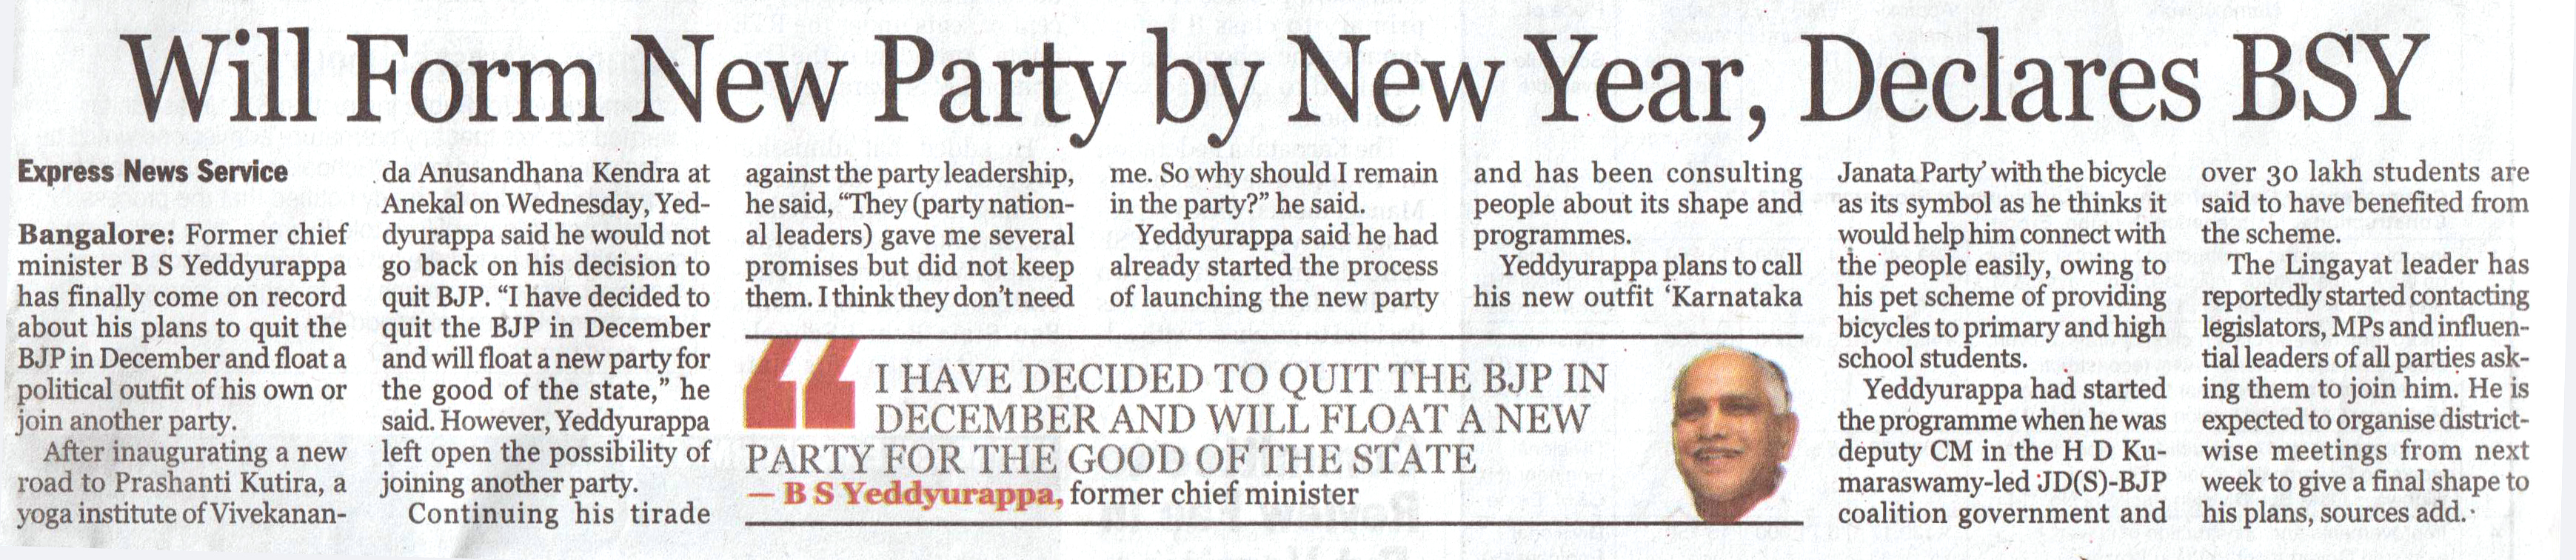 Will form New Party by New Year, Declares BSY